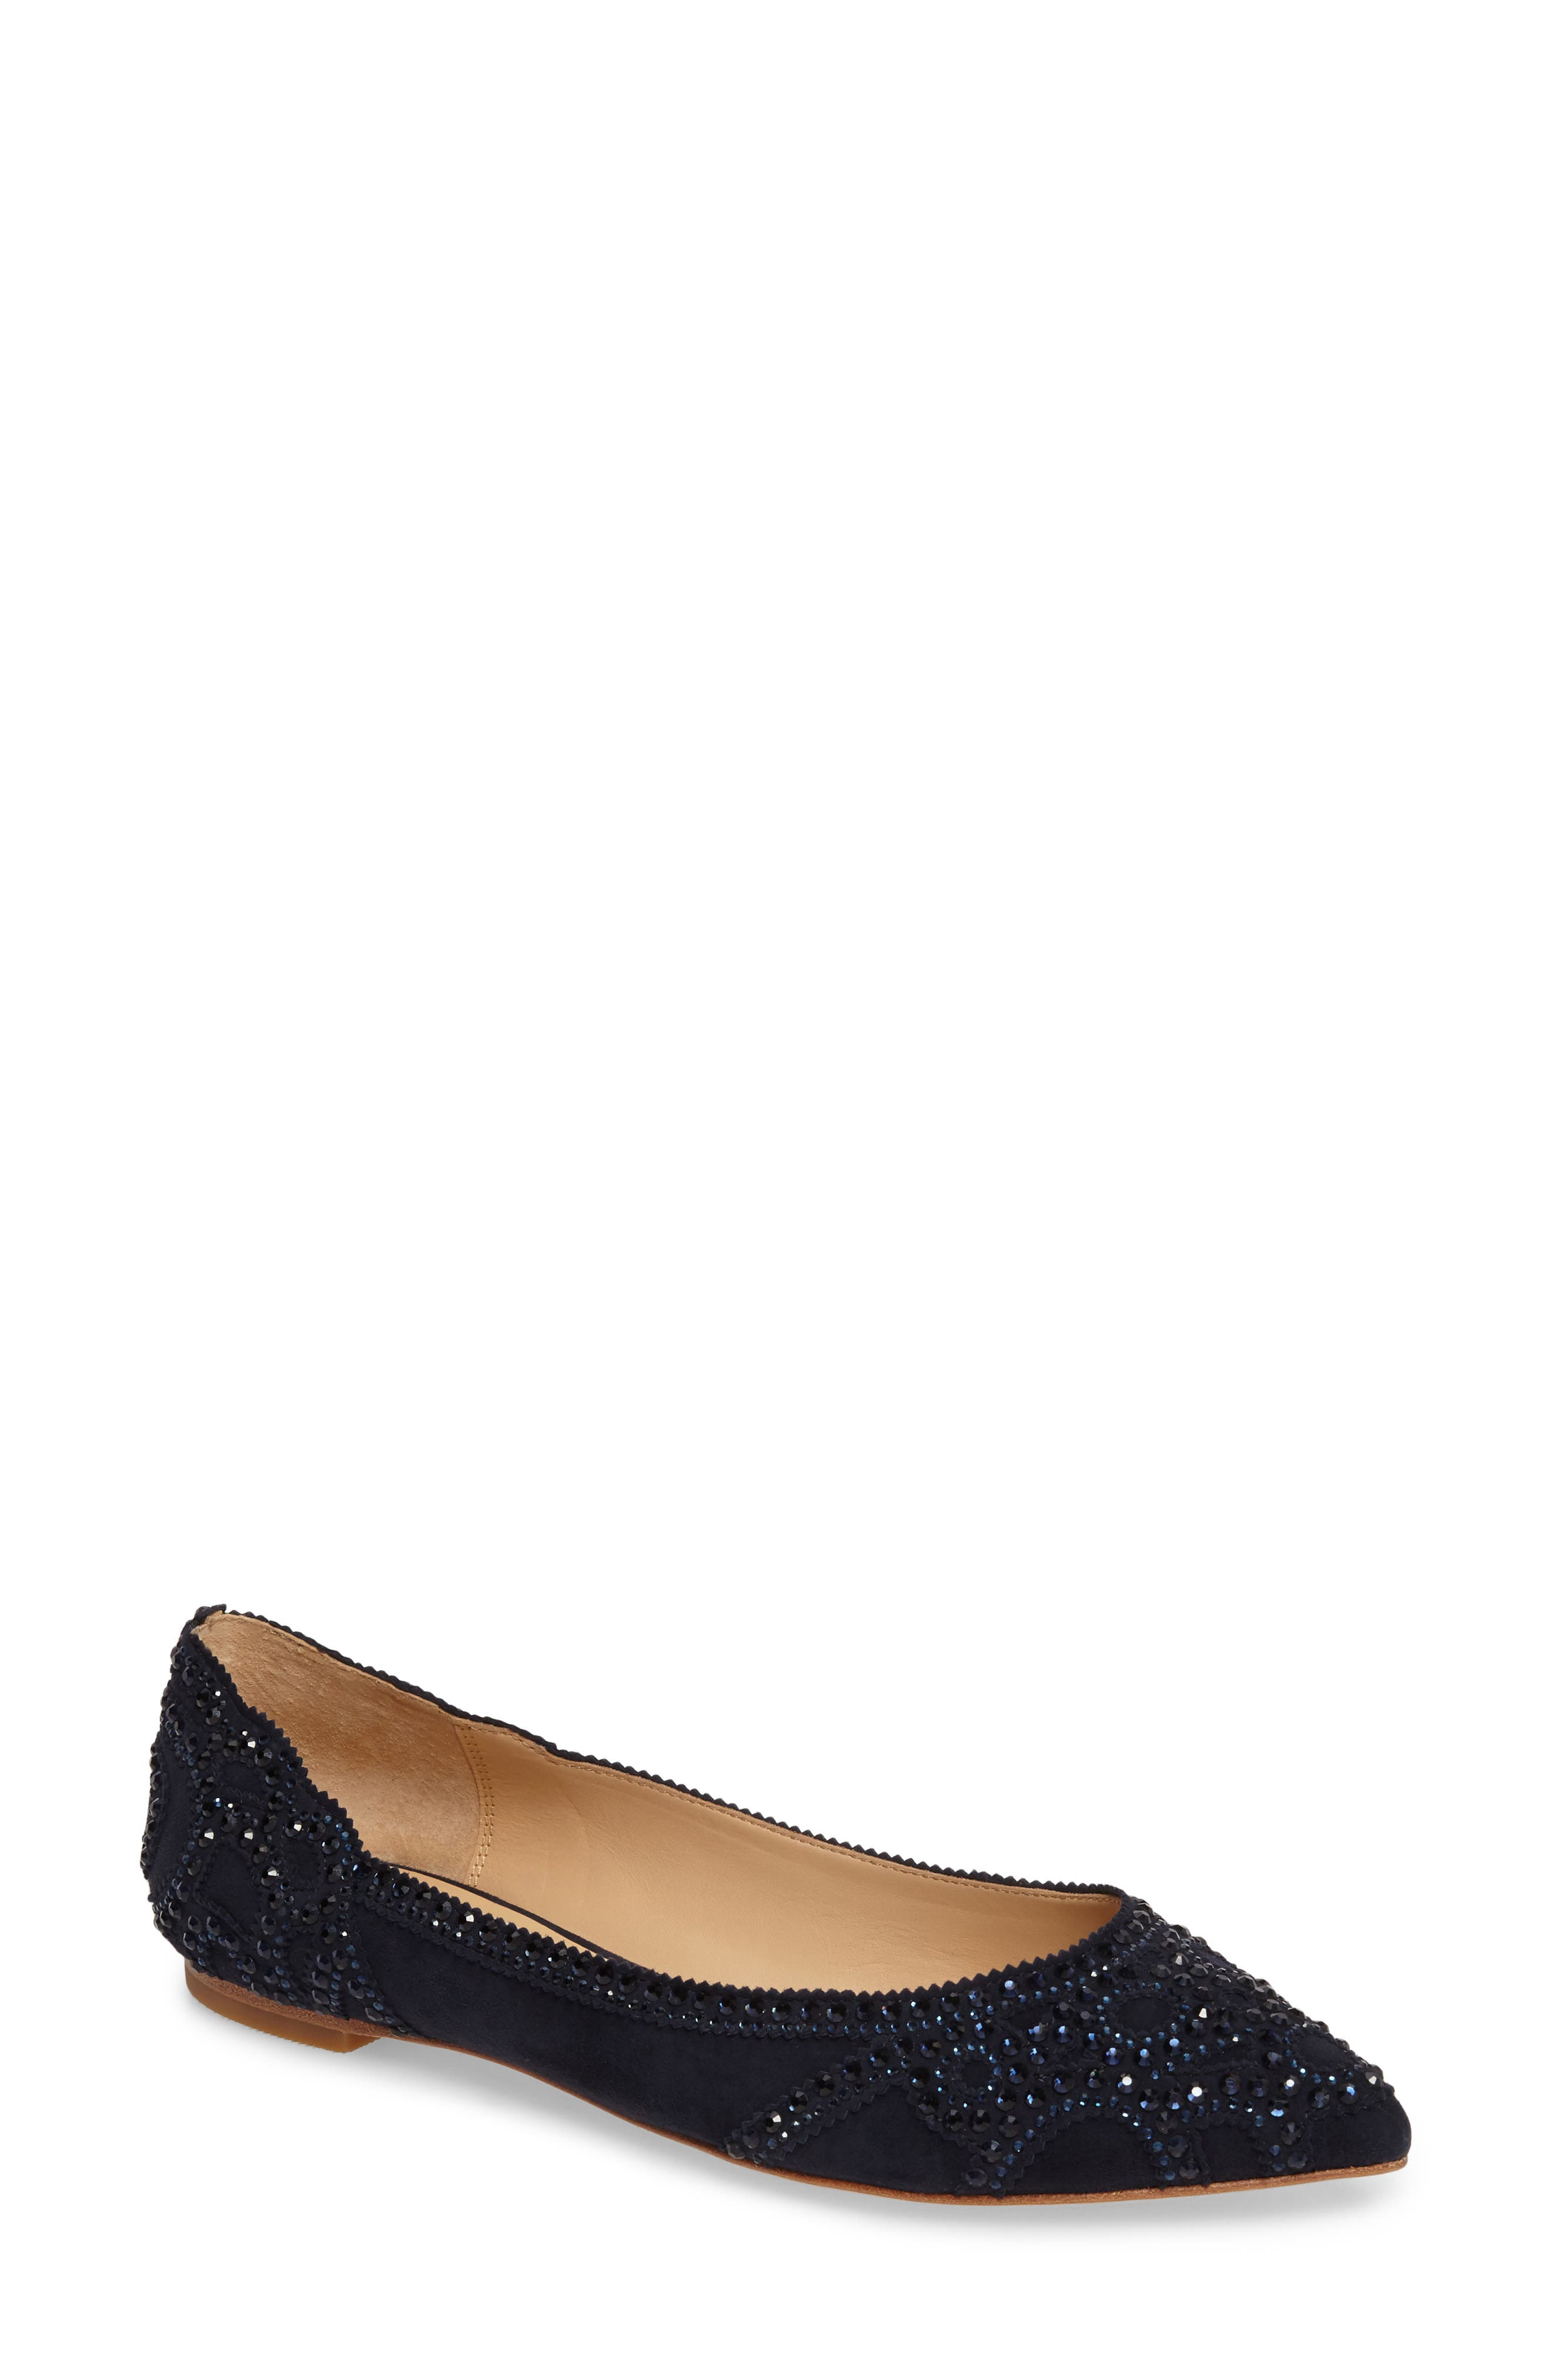 Gigi Crystal Pointy Toe Flat,                             Main thumbnail 1, color,                             Midnight Suede